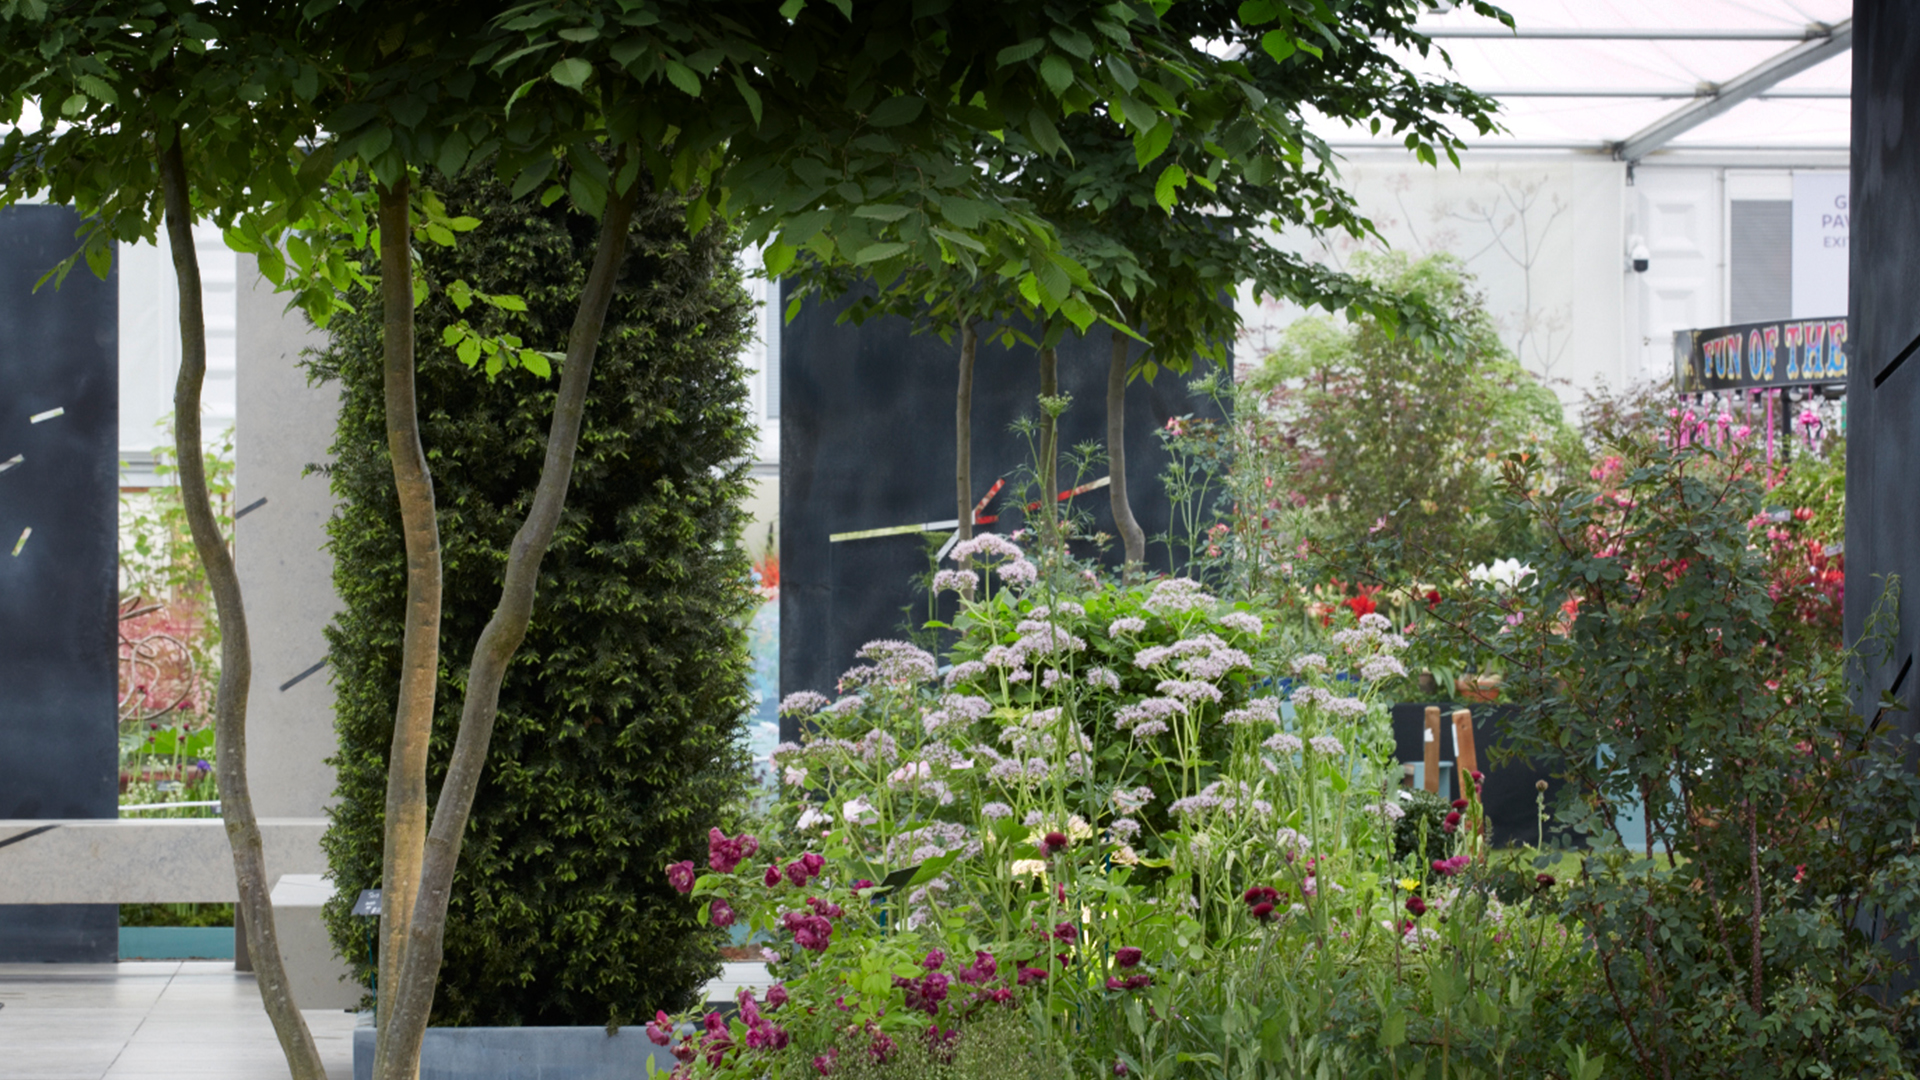 Our garden at the RHS Chelsea Flower Show 2019 -